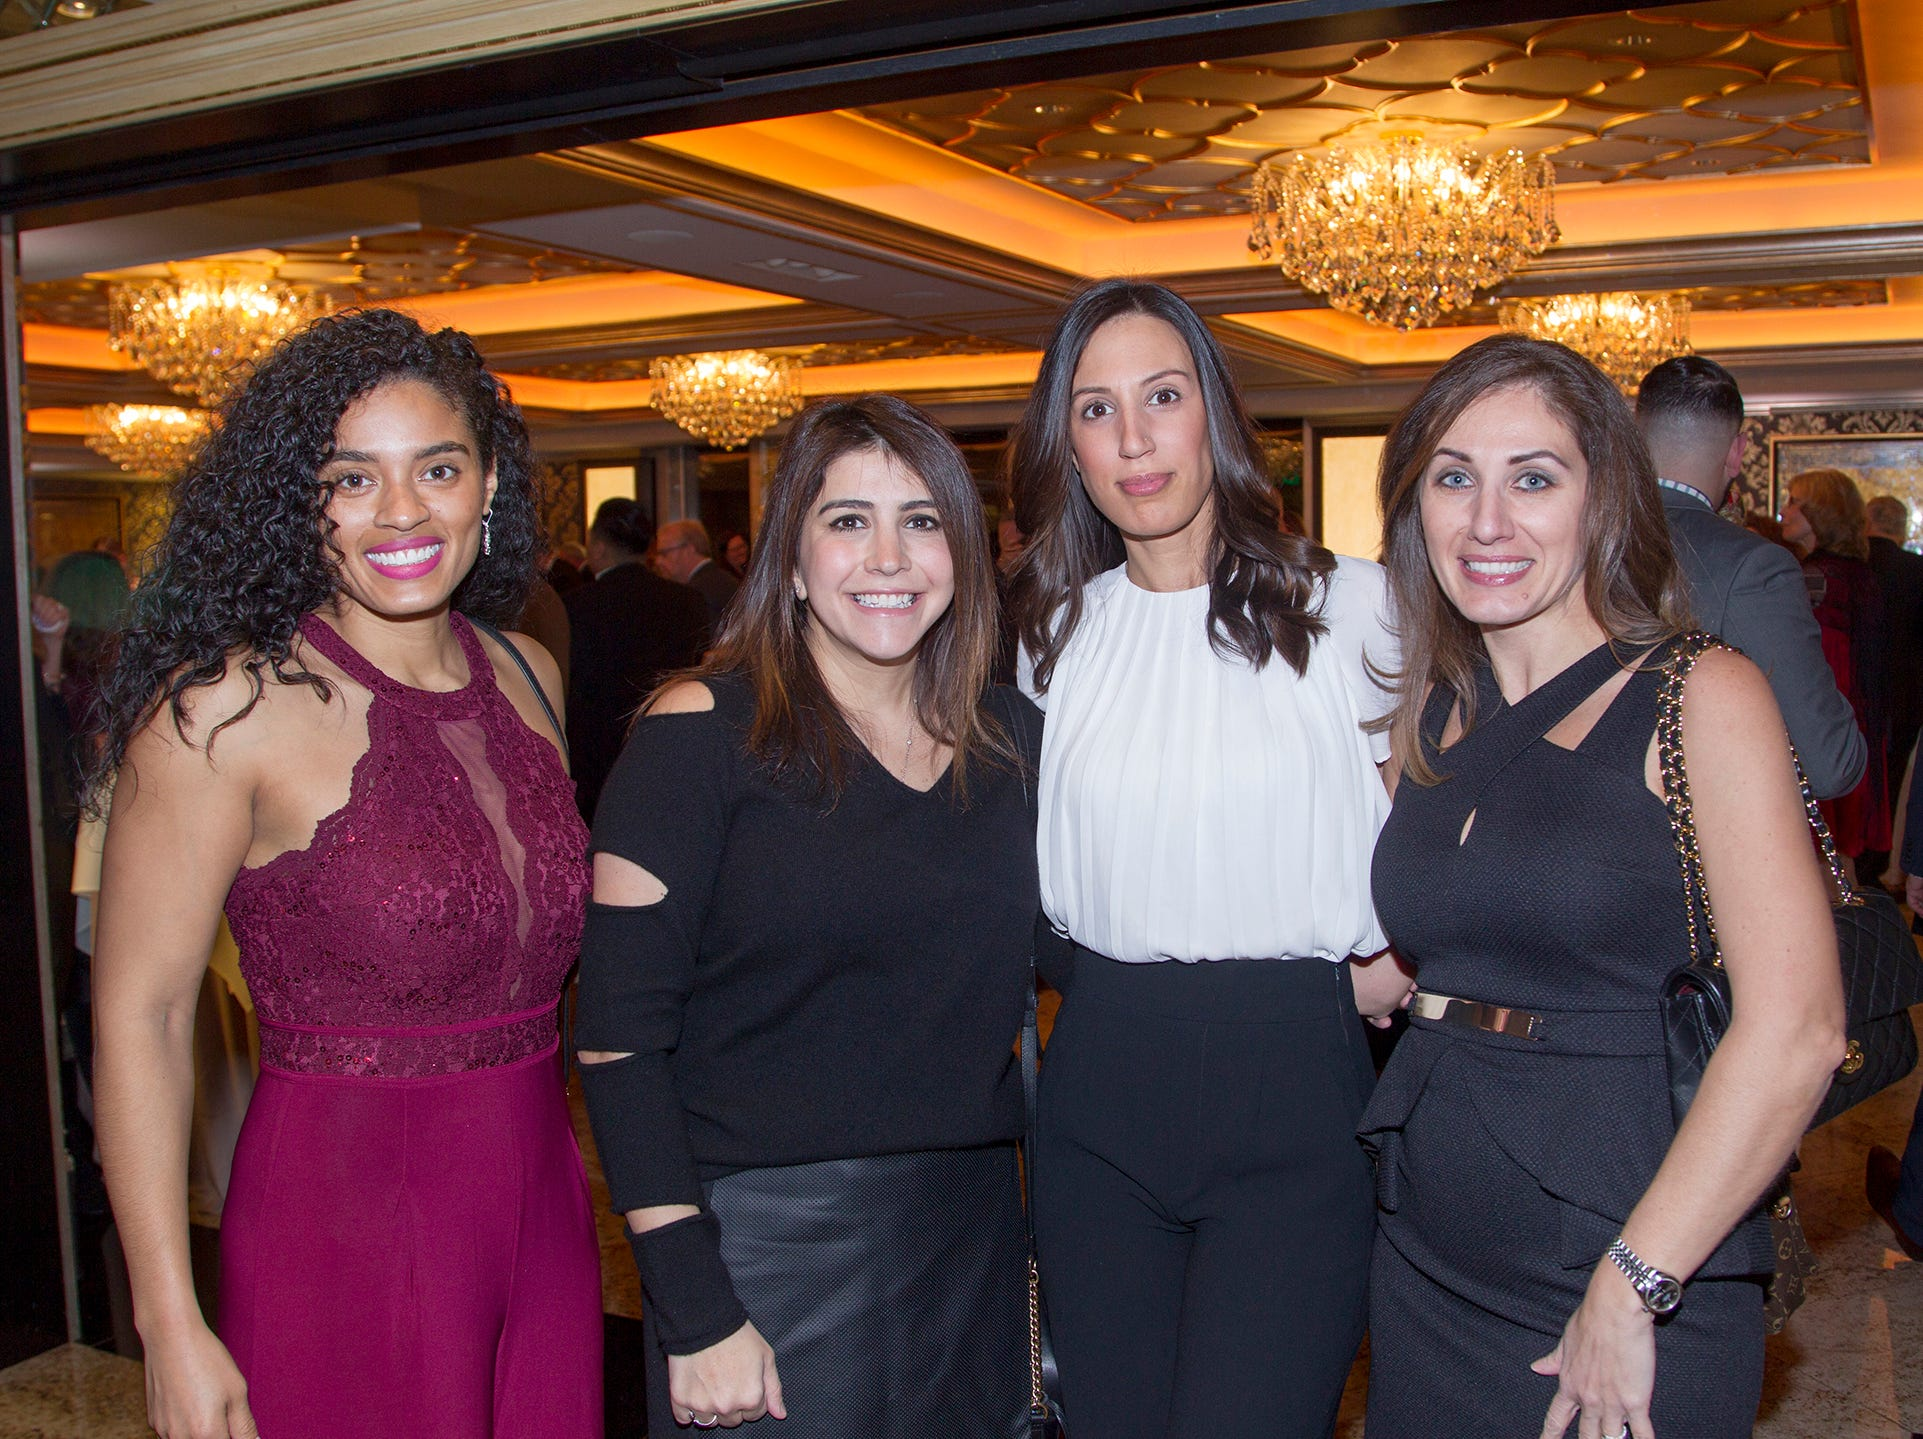 Evete Morales, Martine Adamo, Susanne Baheo, Shani Shabo. Institute for Educational Achievement (IEA) held its annual Dinner Dance at Seasons in Washington Township. 02/02/2019